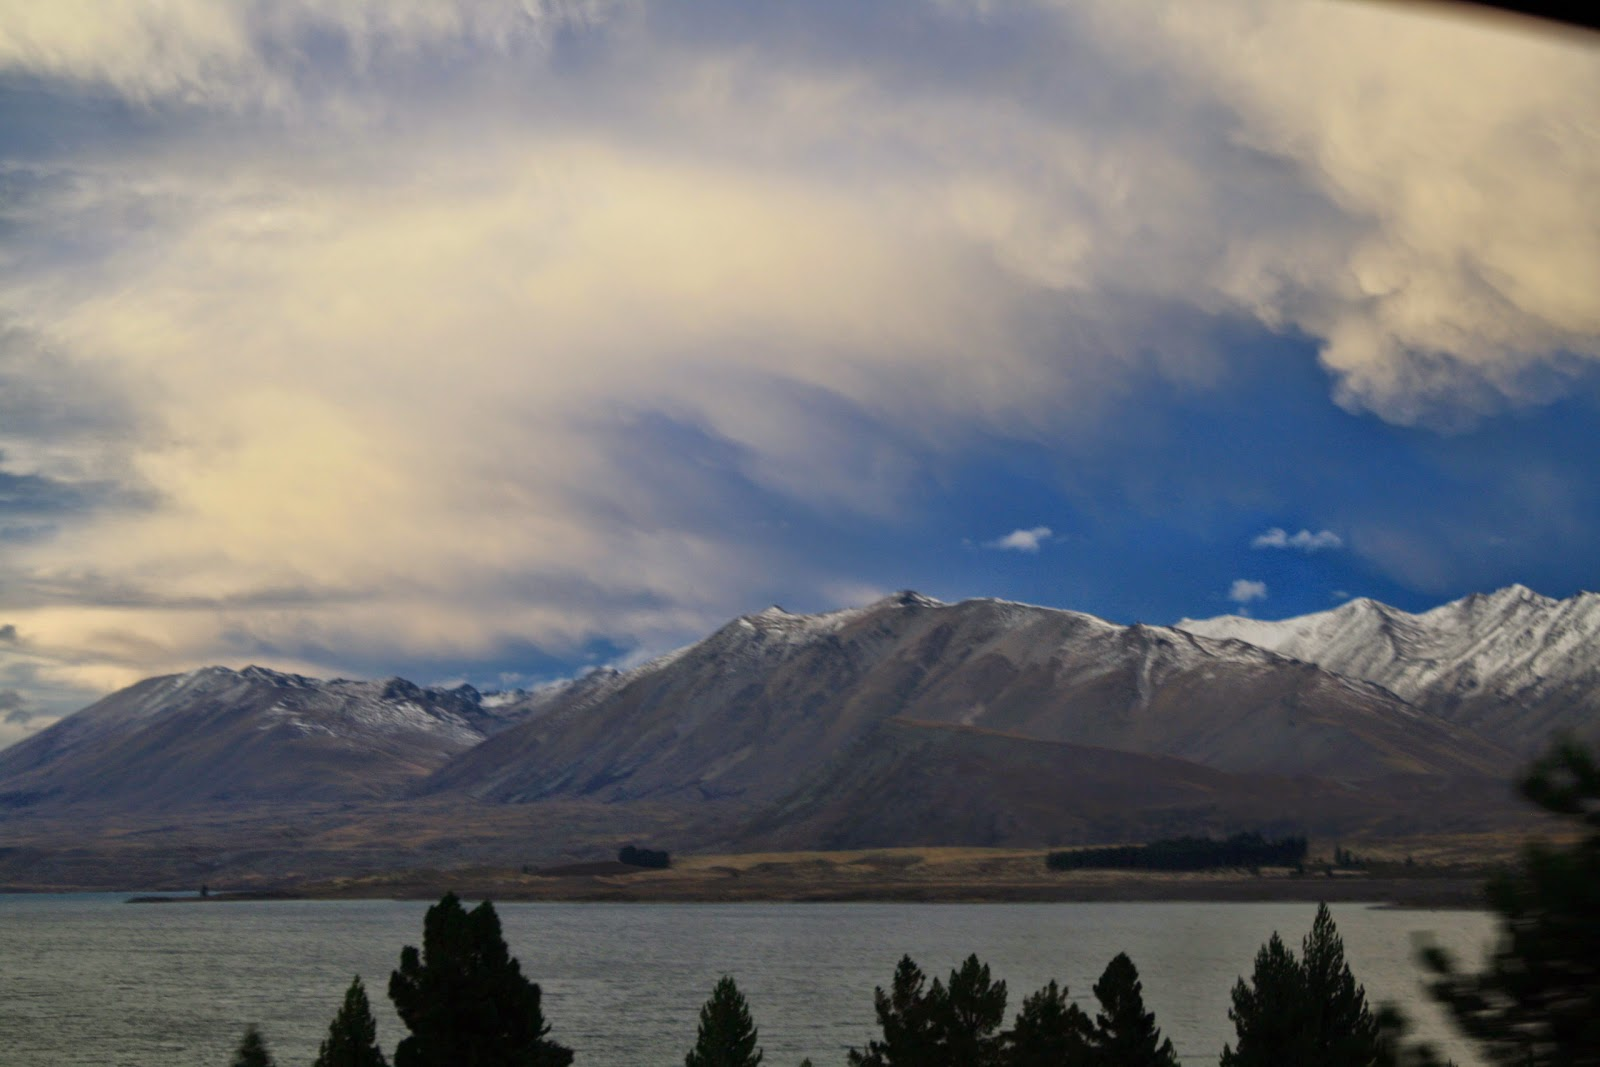 A mountain and a lake in the South Island.